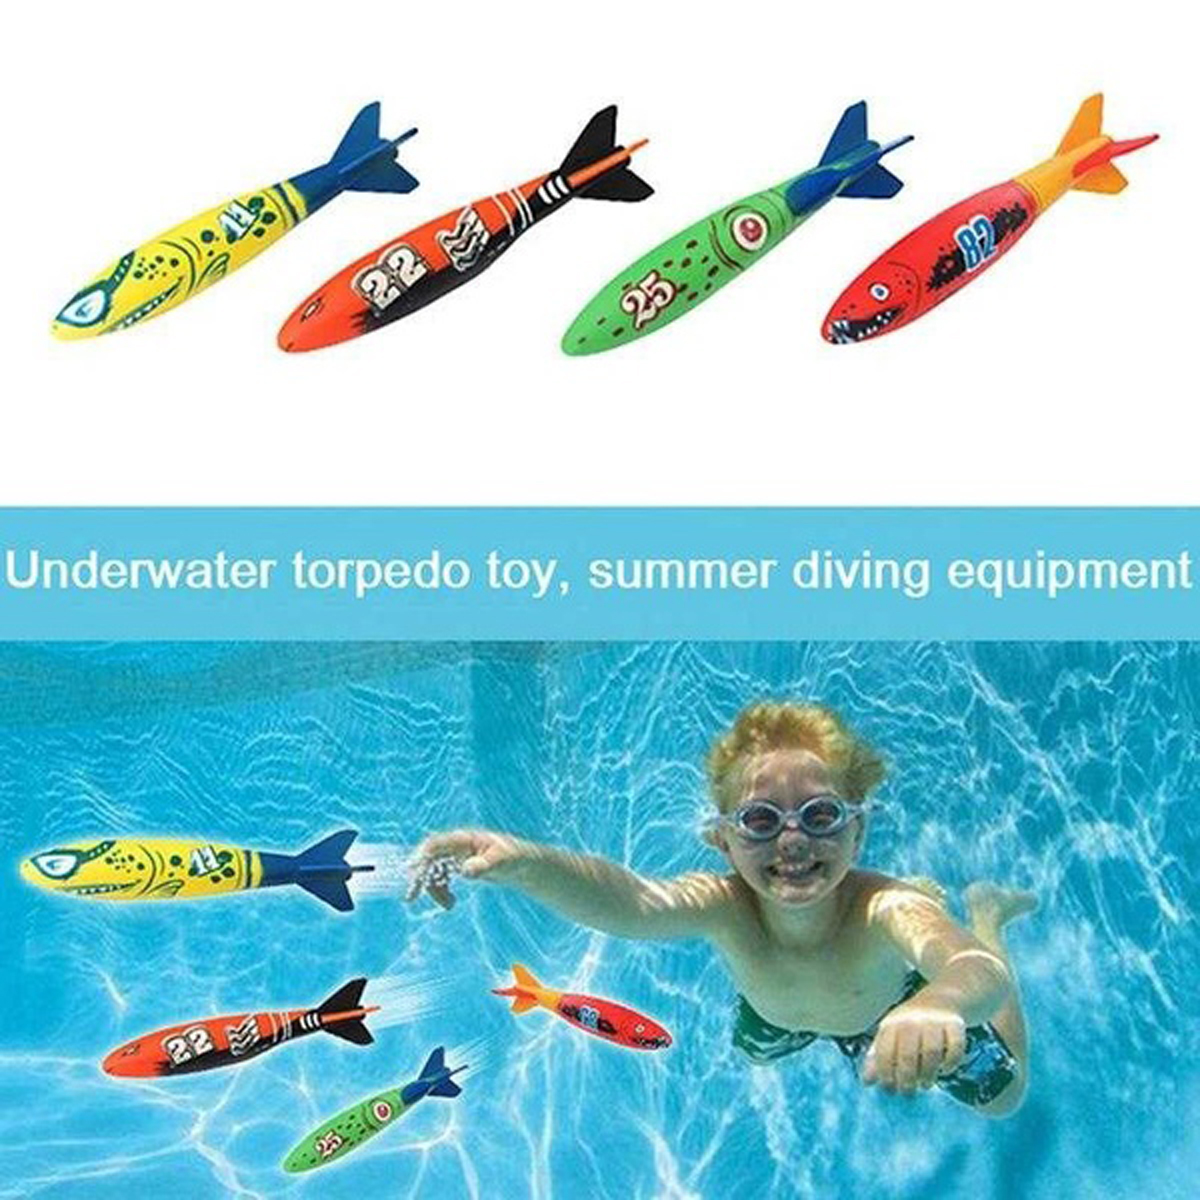 19PCS Swimming Pool Underwater Diving Toys Water Play Toys for Kids 14